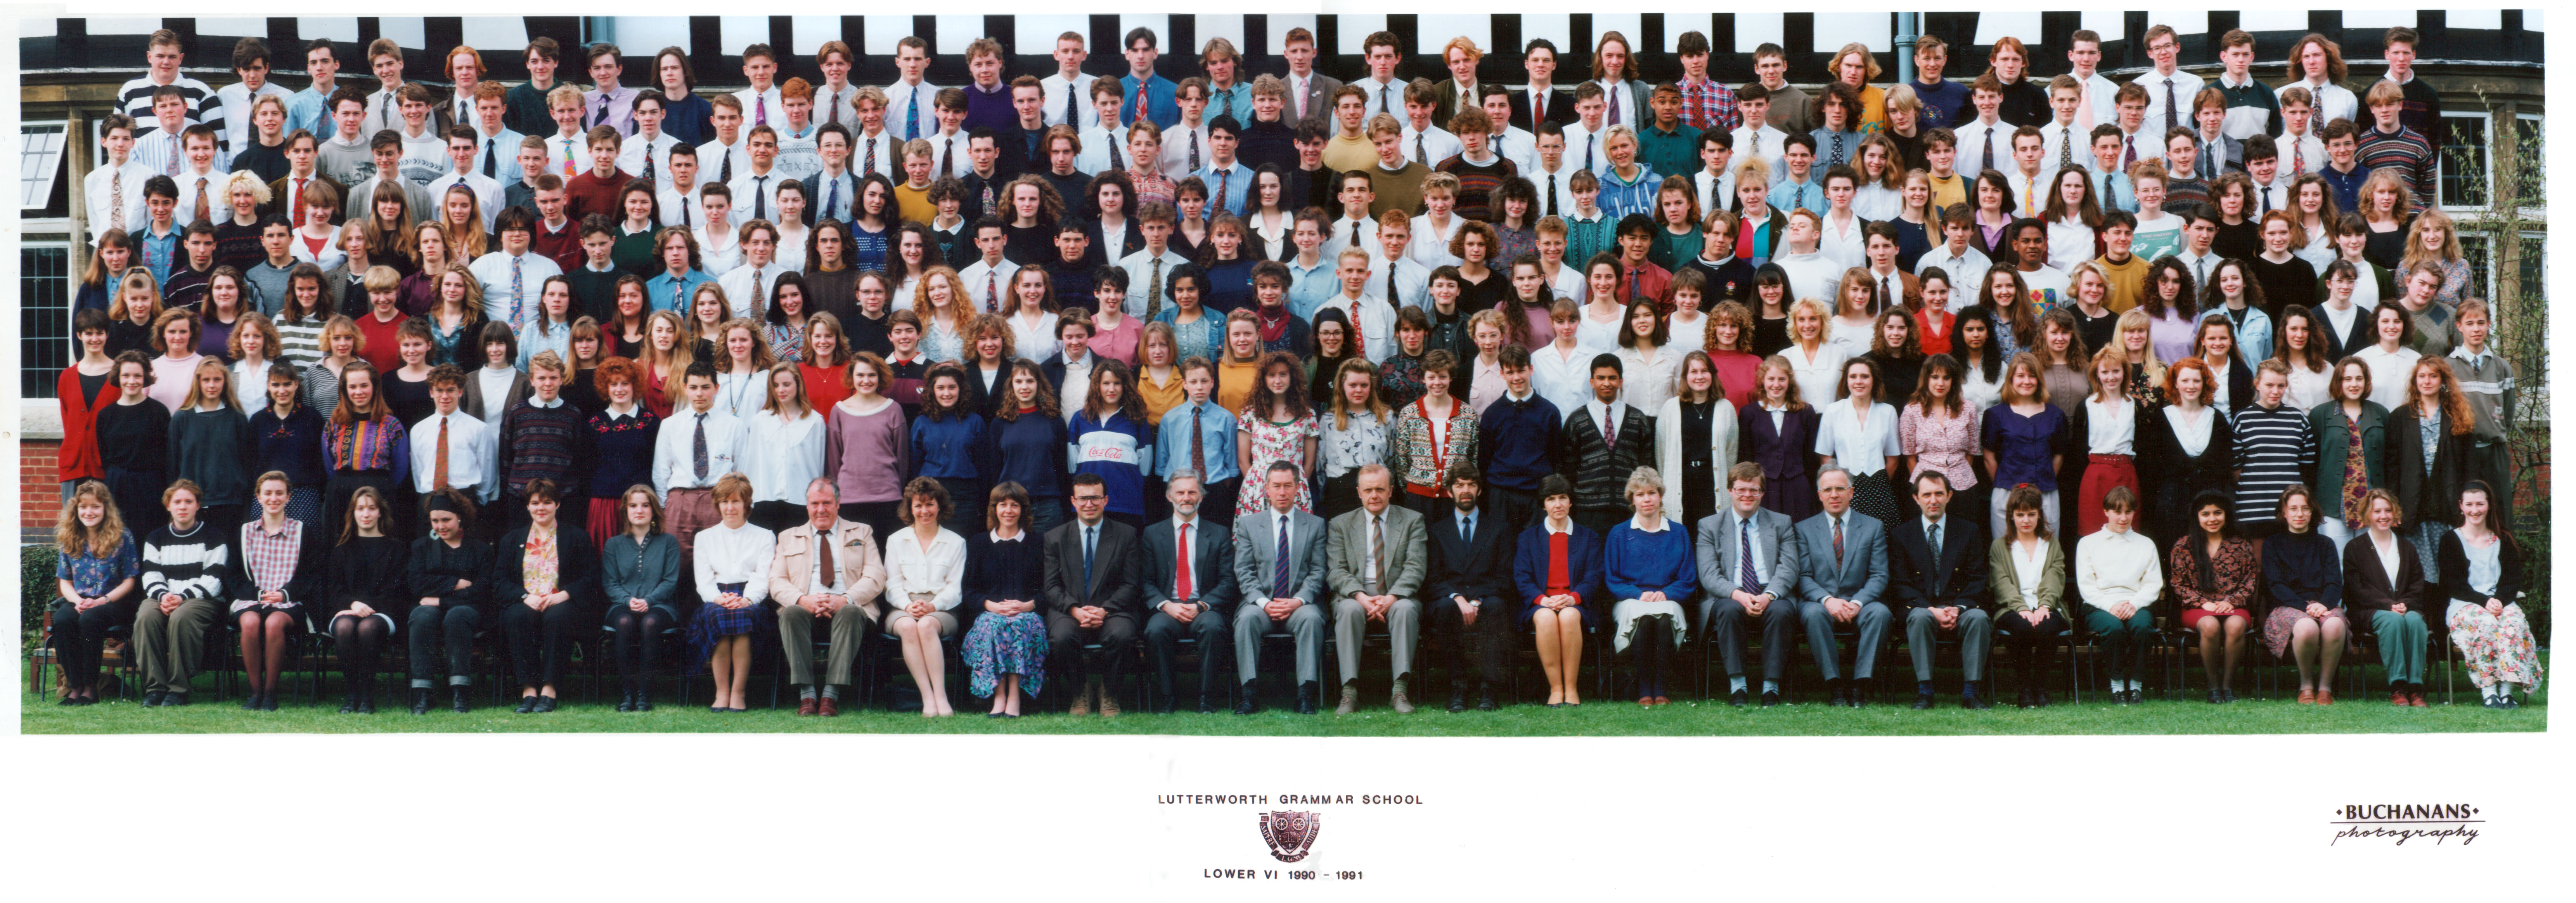 Lutterworth Grammar School Lower Sixth year 1991/Ewen Roberts/flickr